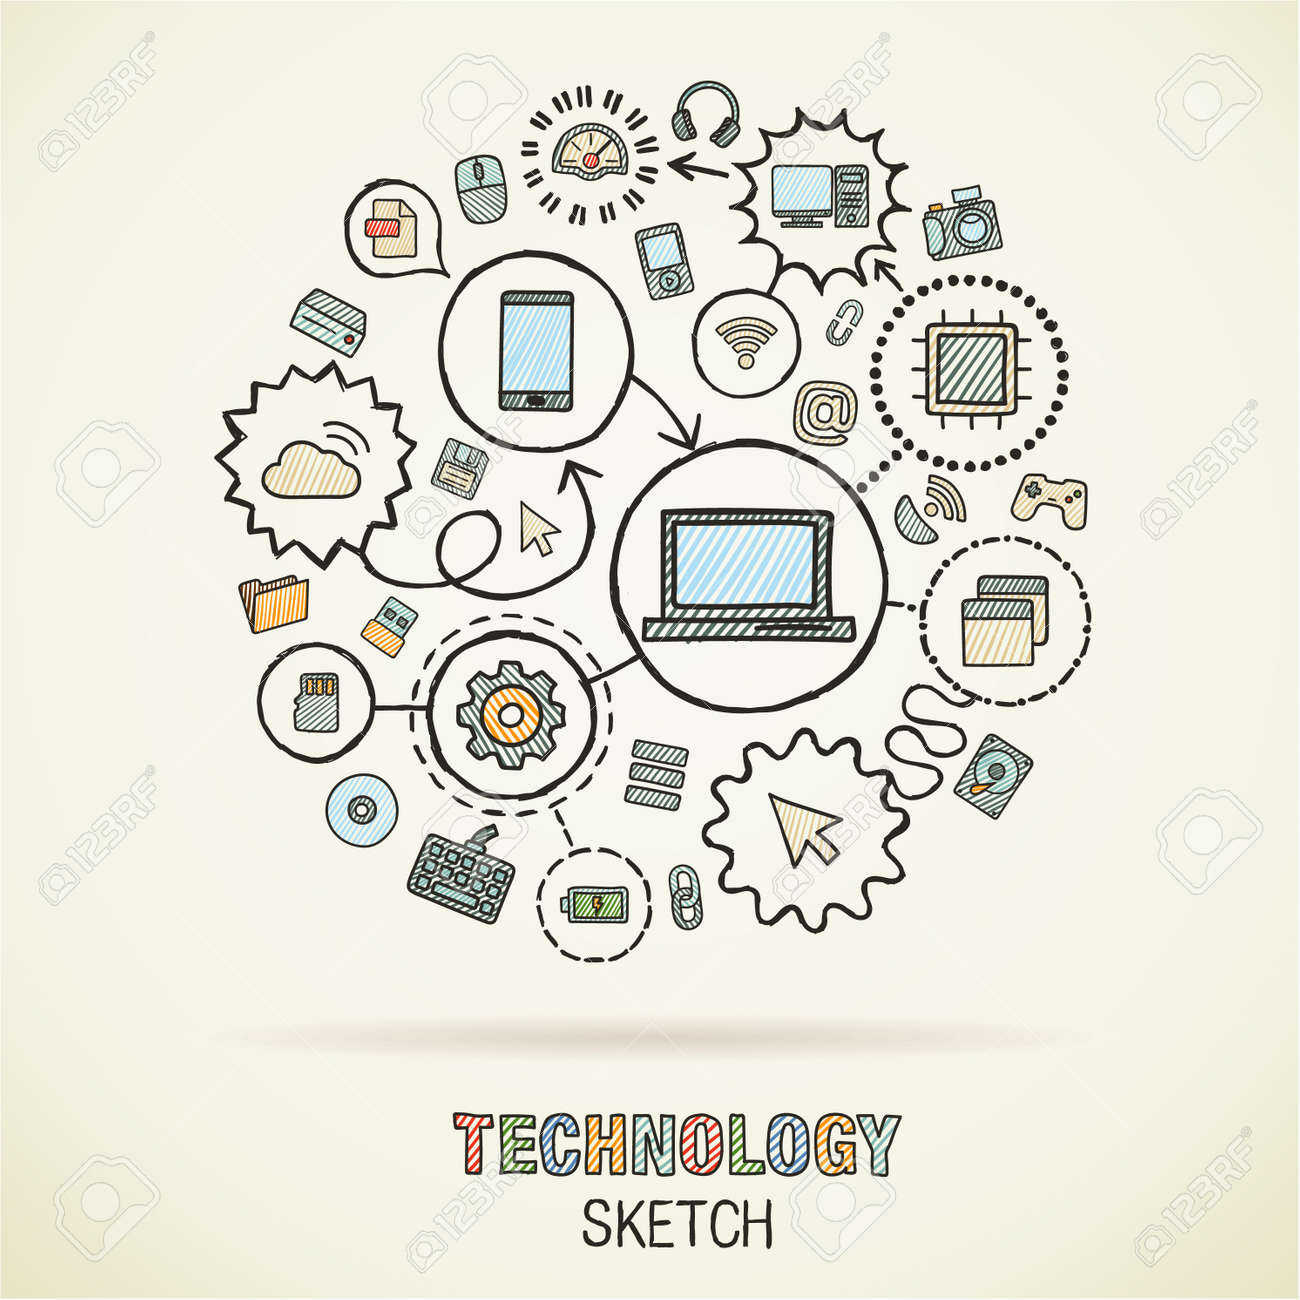 Technology hand drawing integrated sketch icons. Vector doodle interactive pictogram set. Connected infographic illustration on paper: digital, internet, network, communicate, media, global concepts - 43377690